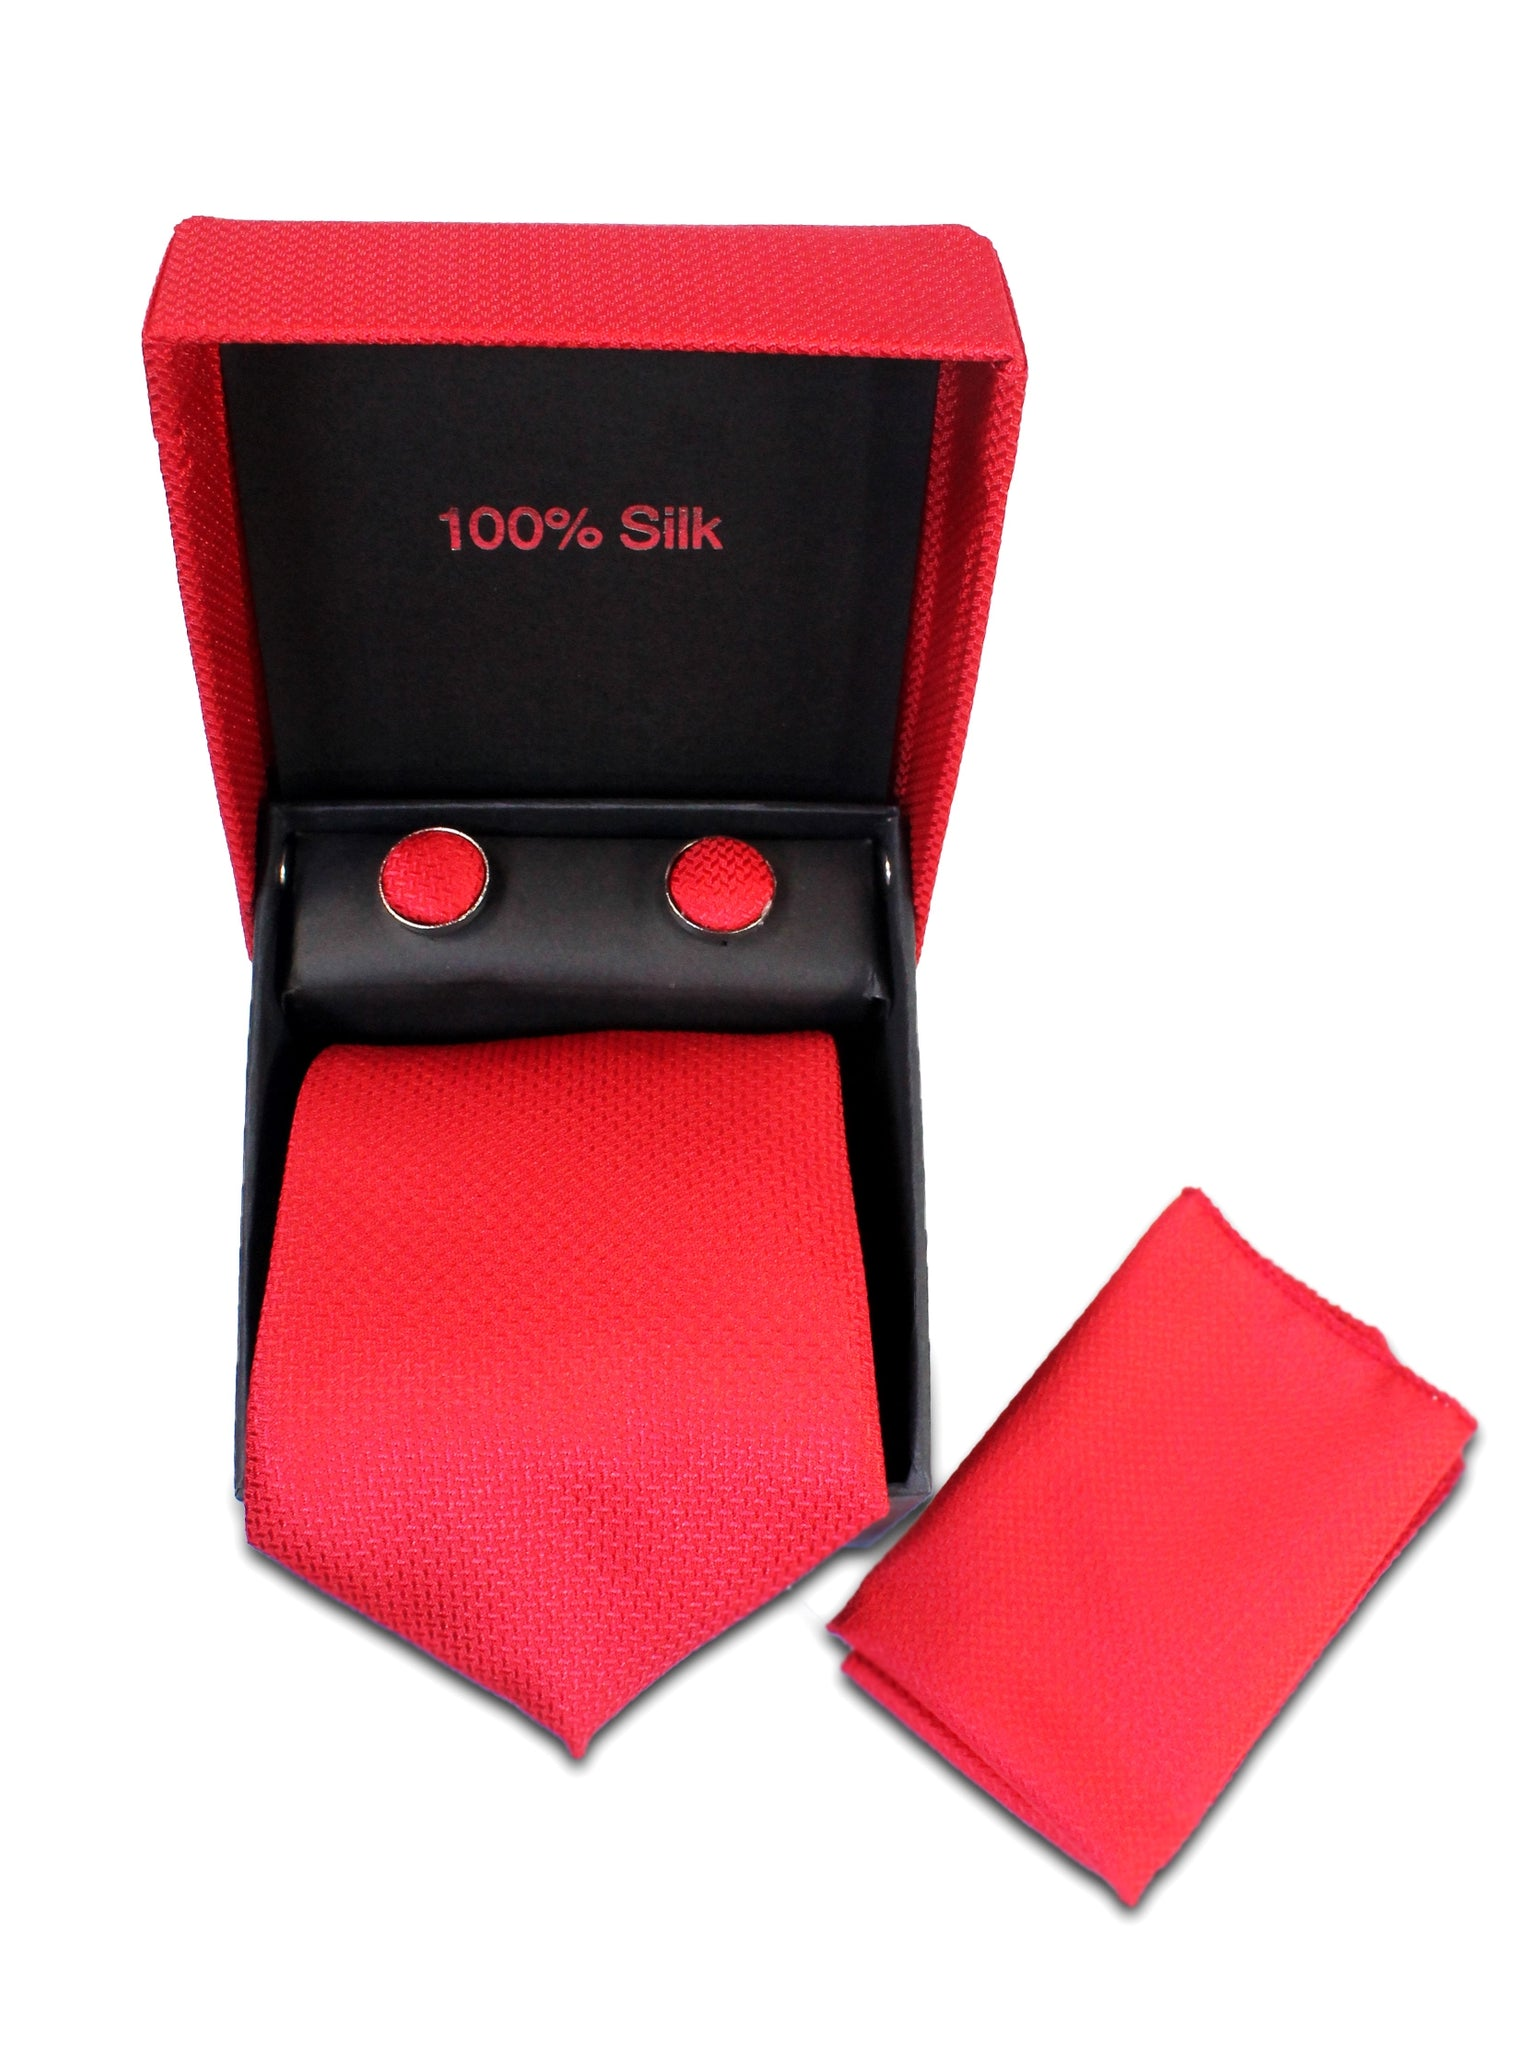 Tie Gift Box Set 3 Pcs Tie Cuff-Link Pocket Square Carmine Red Textured